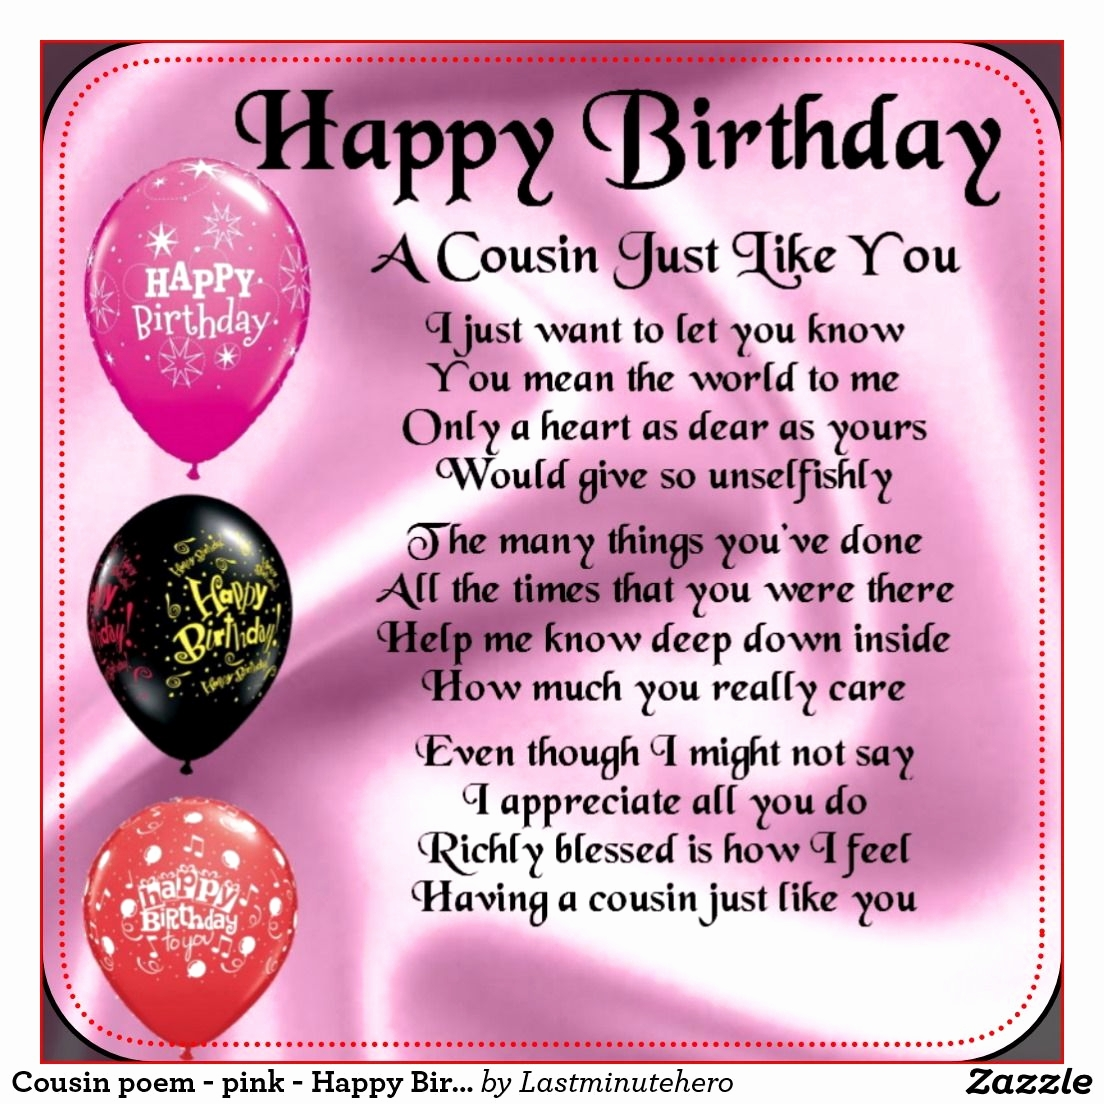 birthday poem for my cousin ; birthday-wishes-to-a-cousin-best-of-happy-birthday-poems-for-my-cousin-12-of-birthday-wishes-to-a-cousin